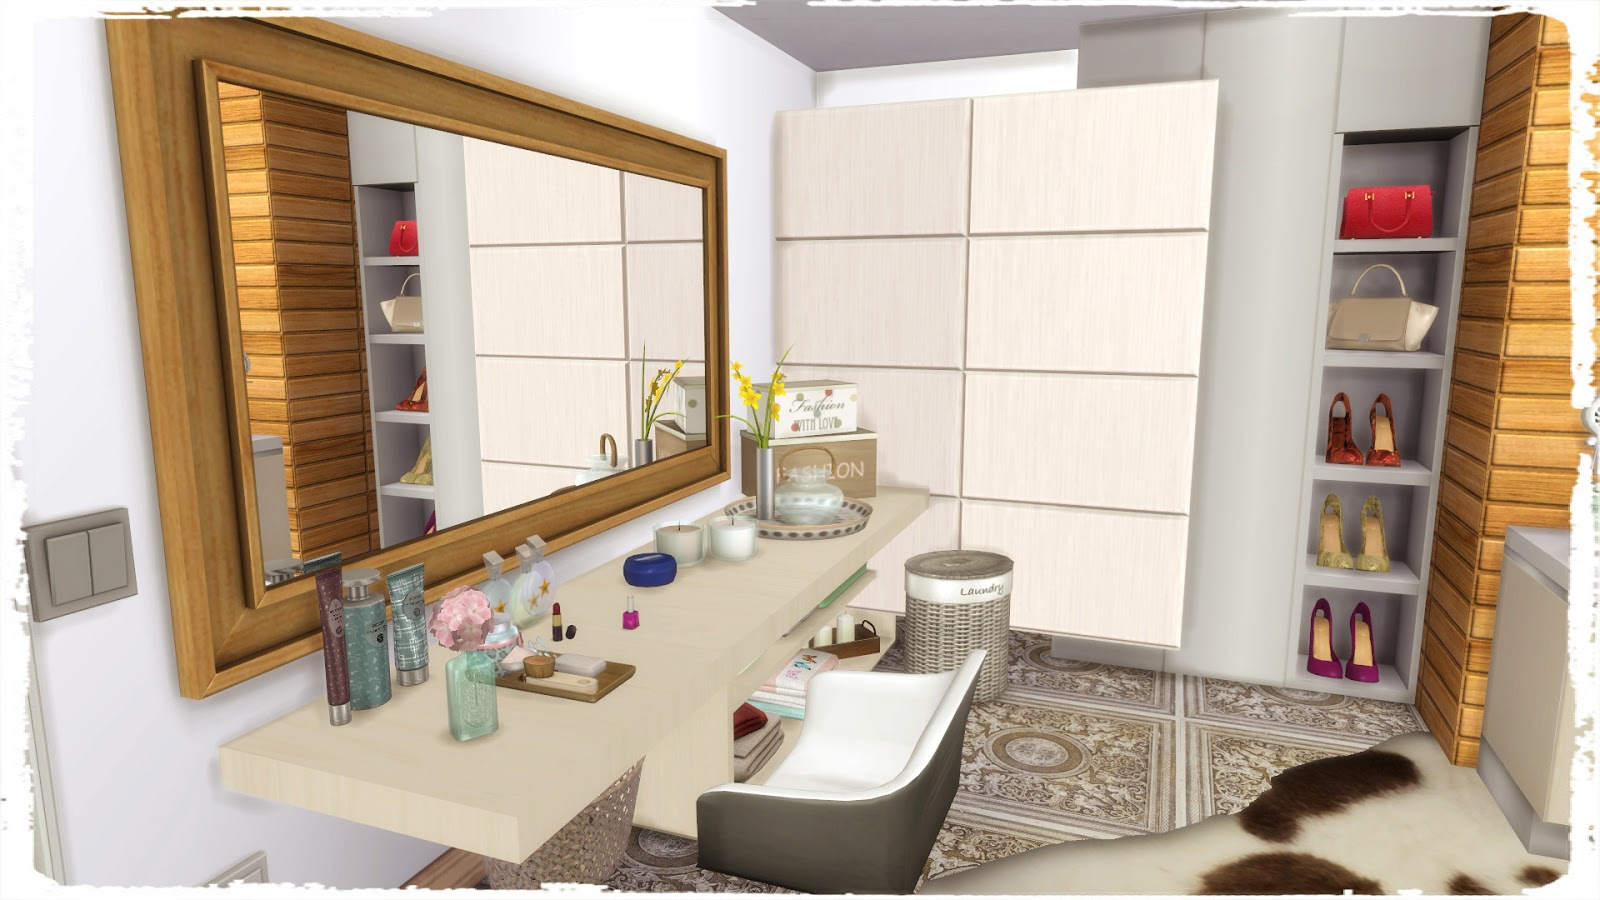 The toilet is perhaps one of the most important features of your bathroom and selecting one for a bathroom shouldn't be an afterthought. Sims 4 - Luxury Bathroom (Build & Decoration) - Dinha